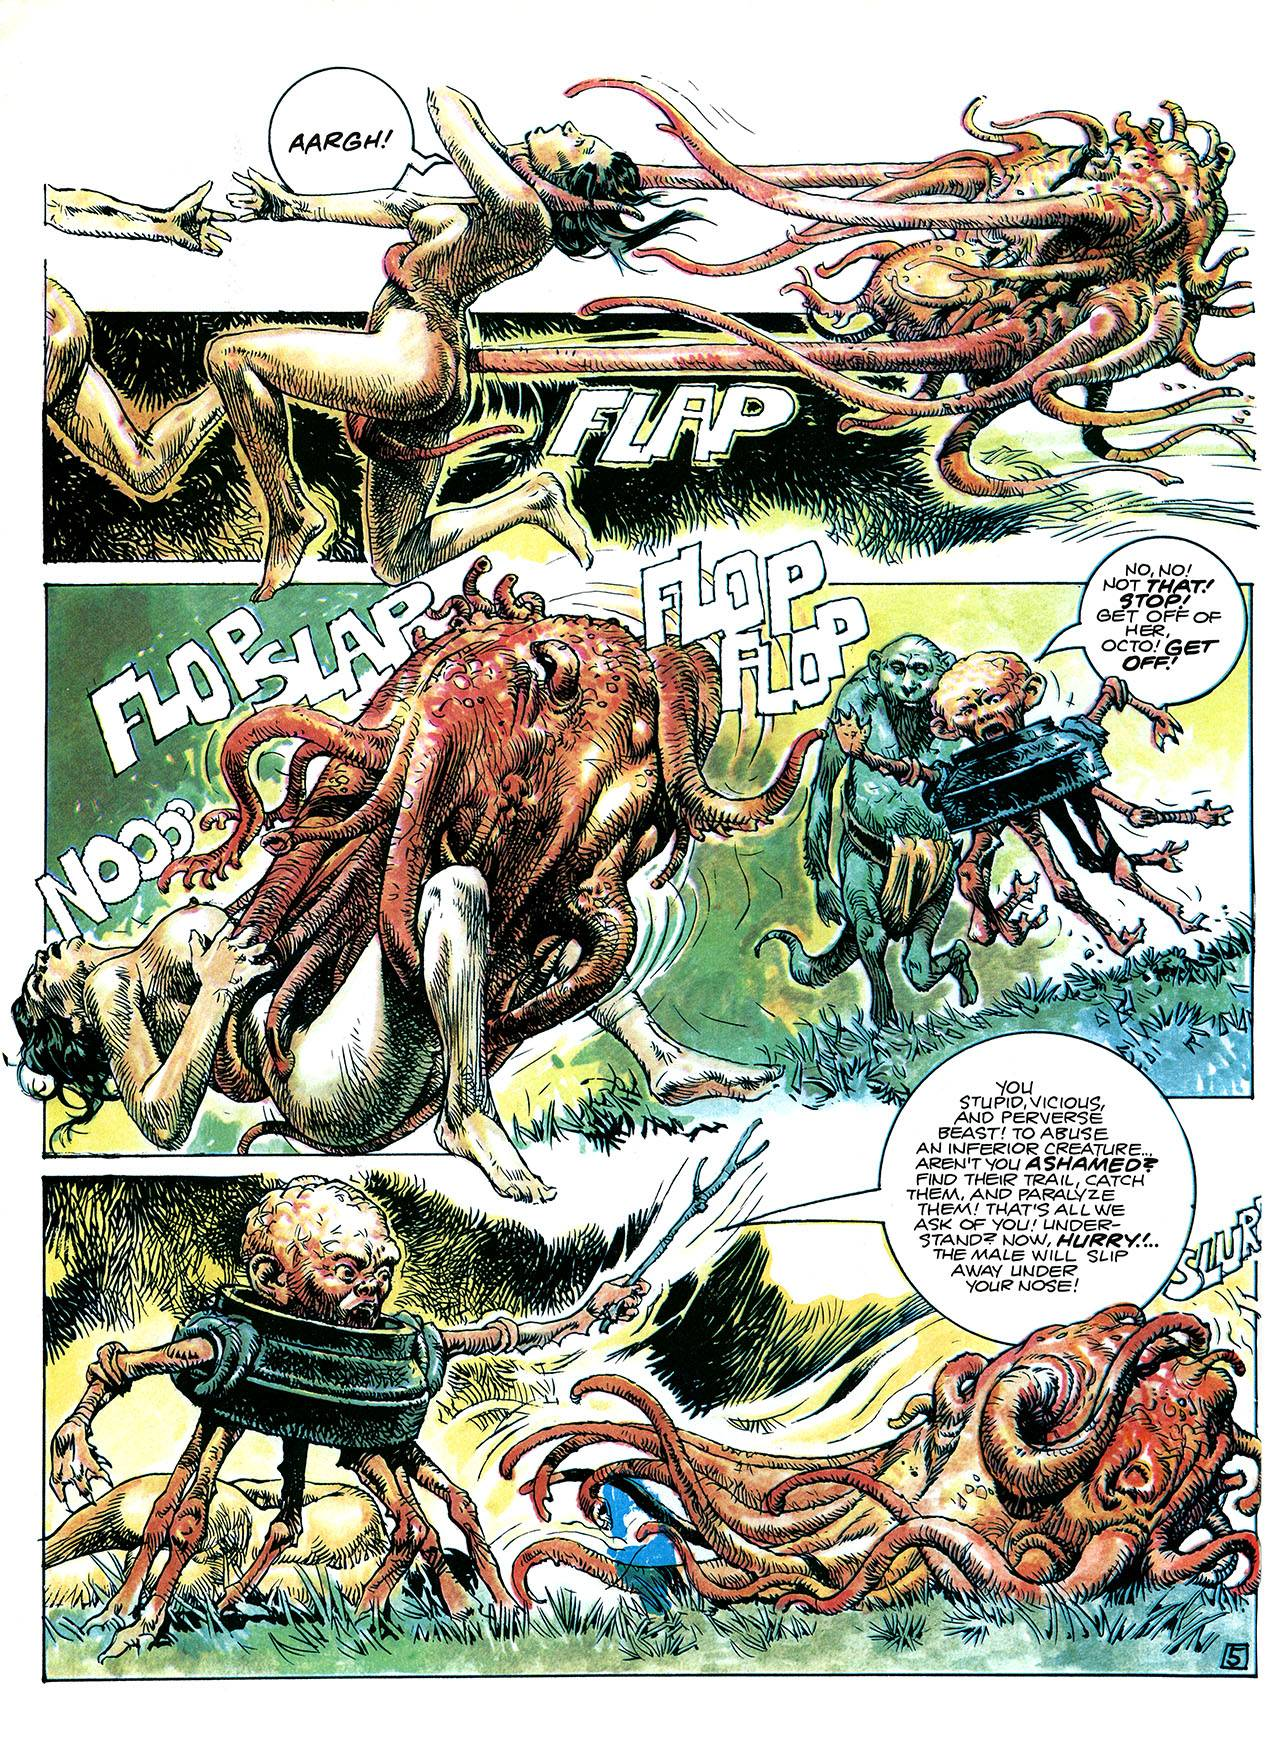 Heavy Metal magazine, in the special issue Son of Heavy MetalMay 1984paolo-serpieri-children-of-the-future-excerpt